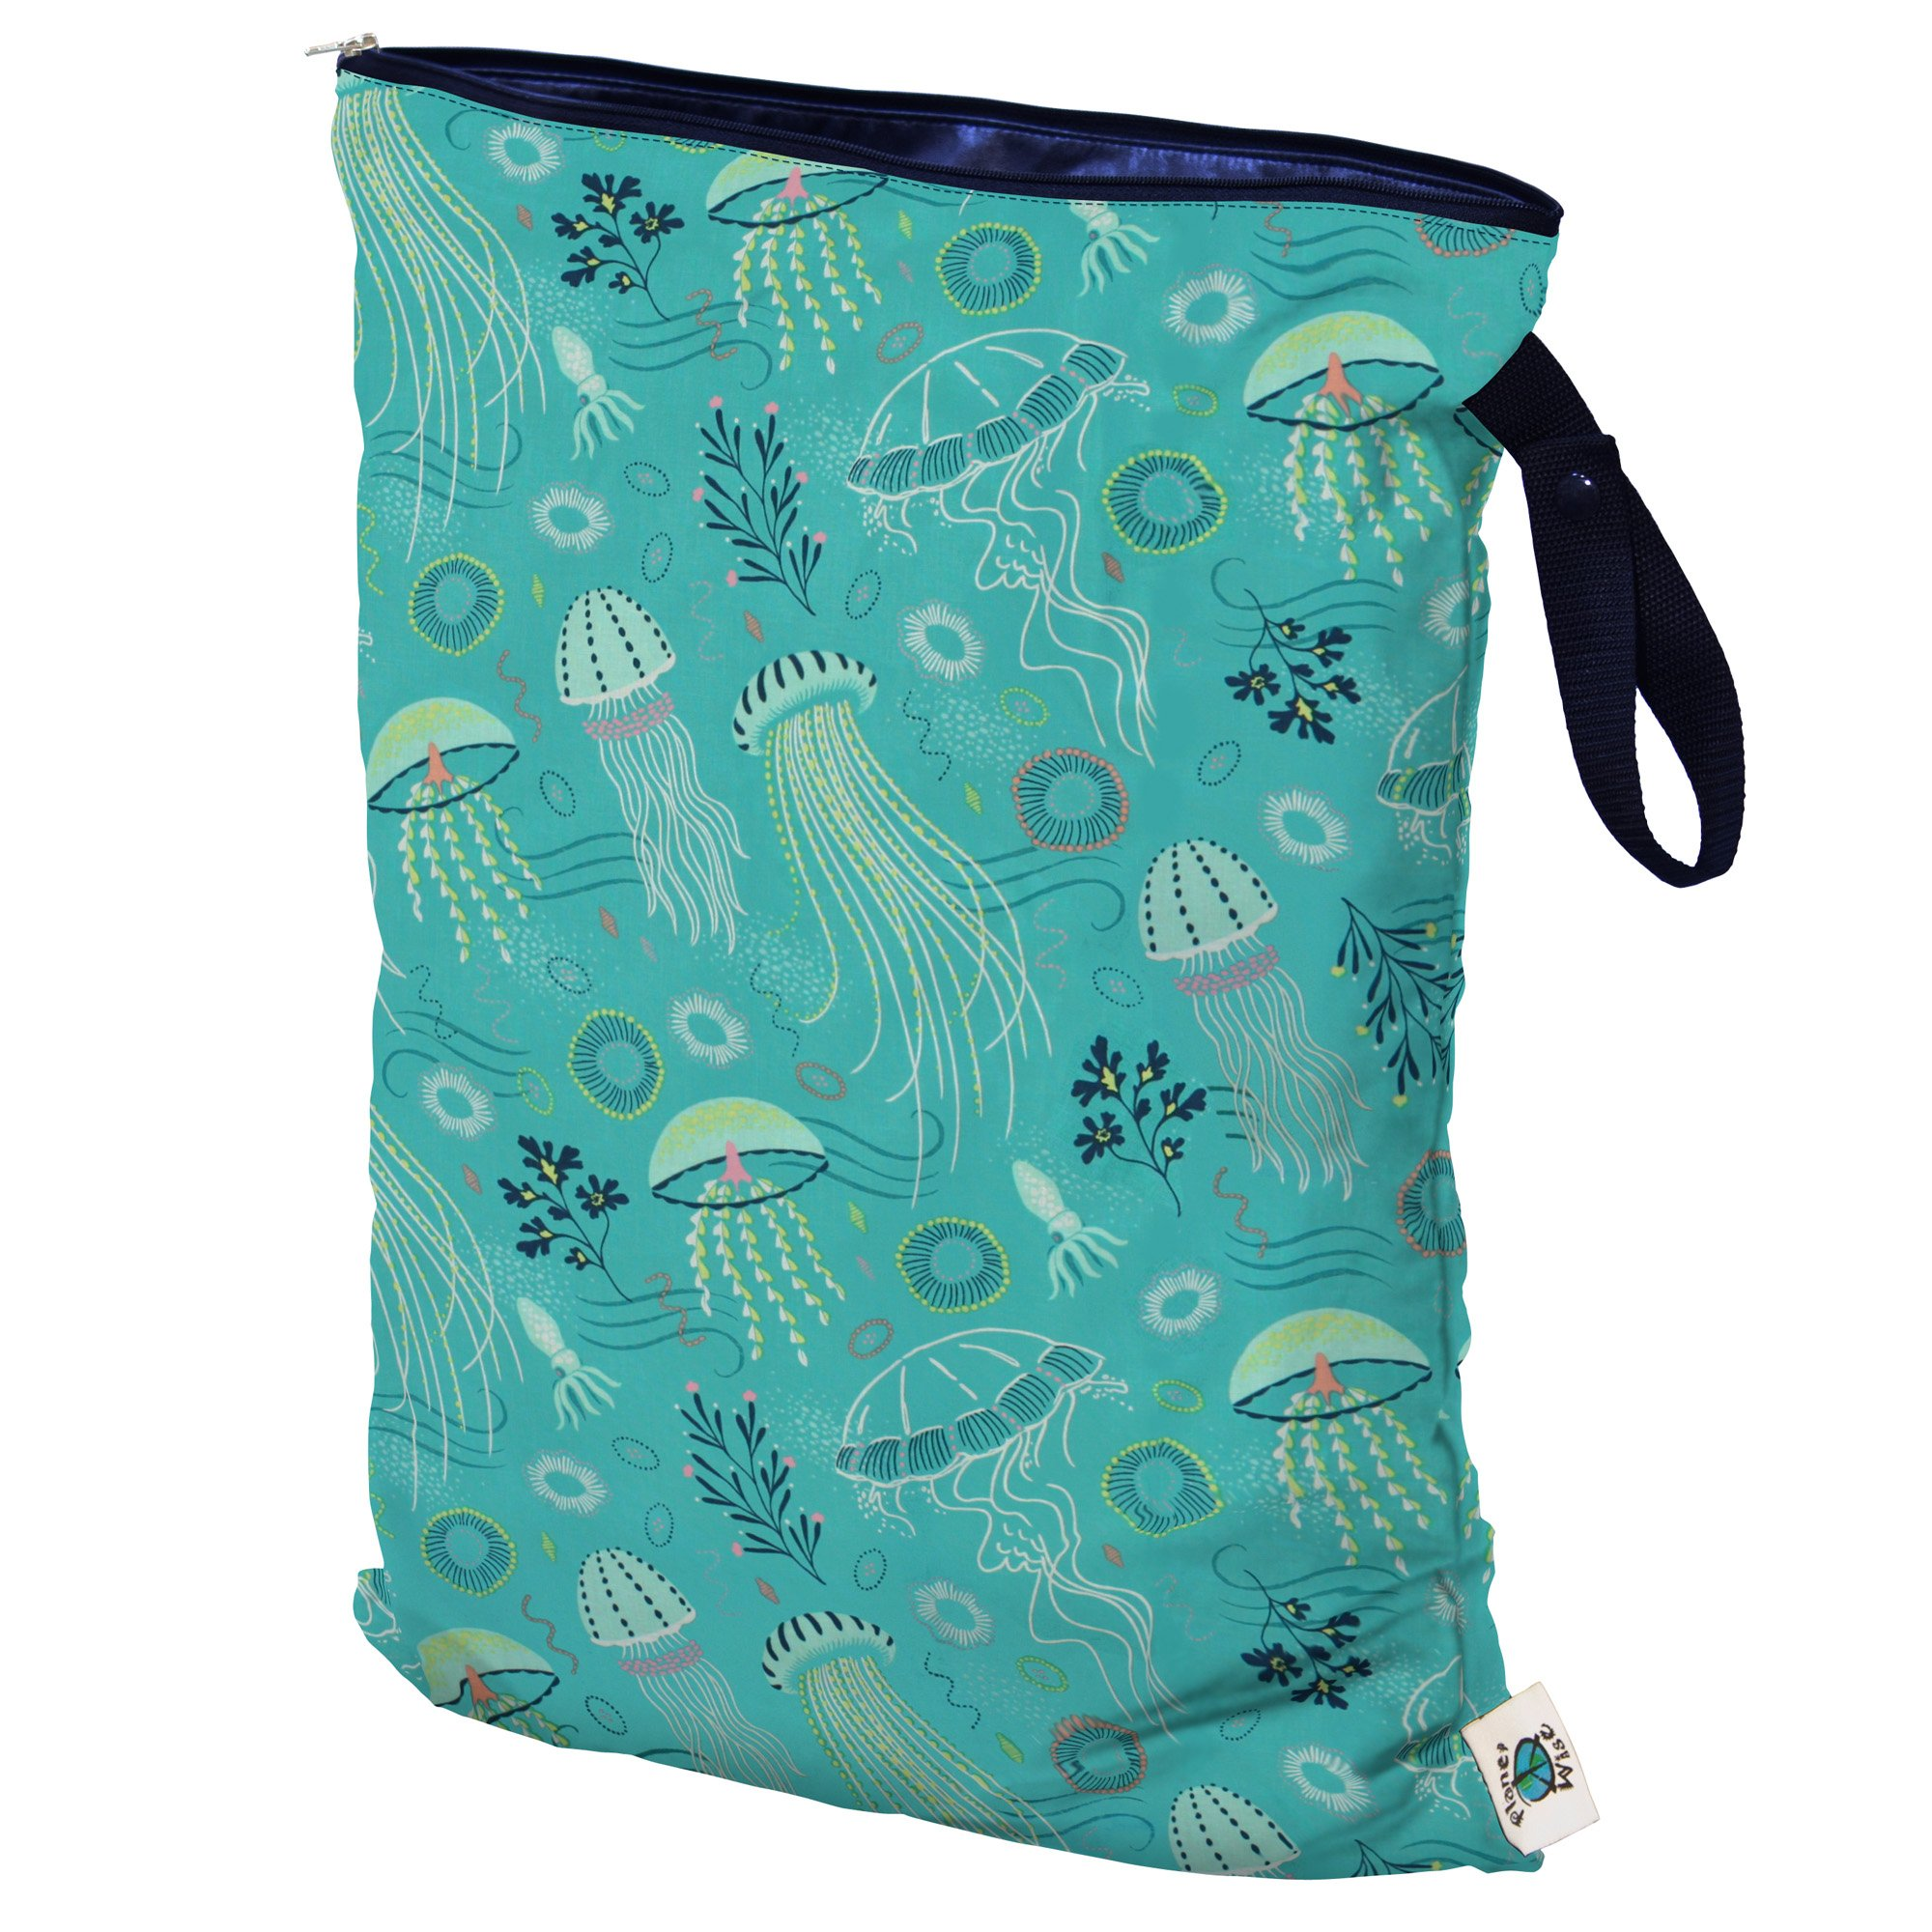 Planet Wise Wet Bag, Jelly Jubilee, Large, Made in the USA